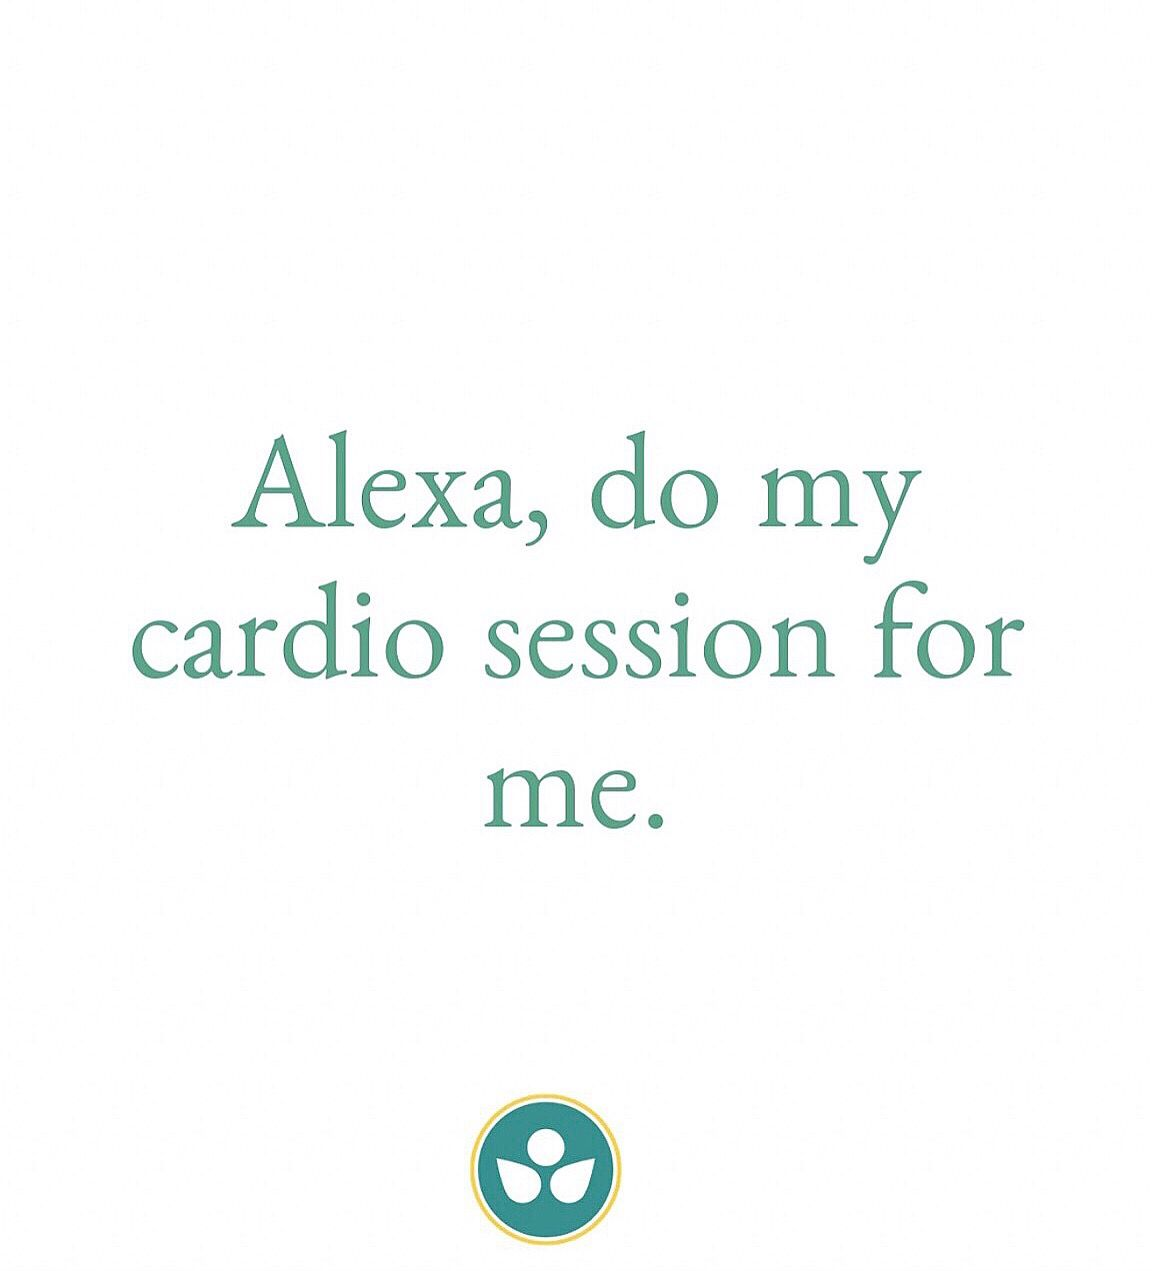 Funny Fitness Quotes Workout Quotes Funny Instagram Words Cardio Quote